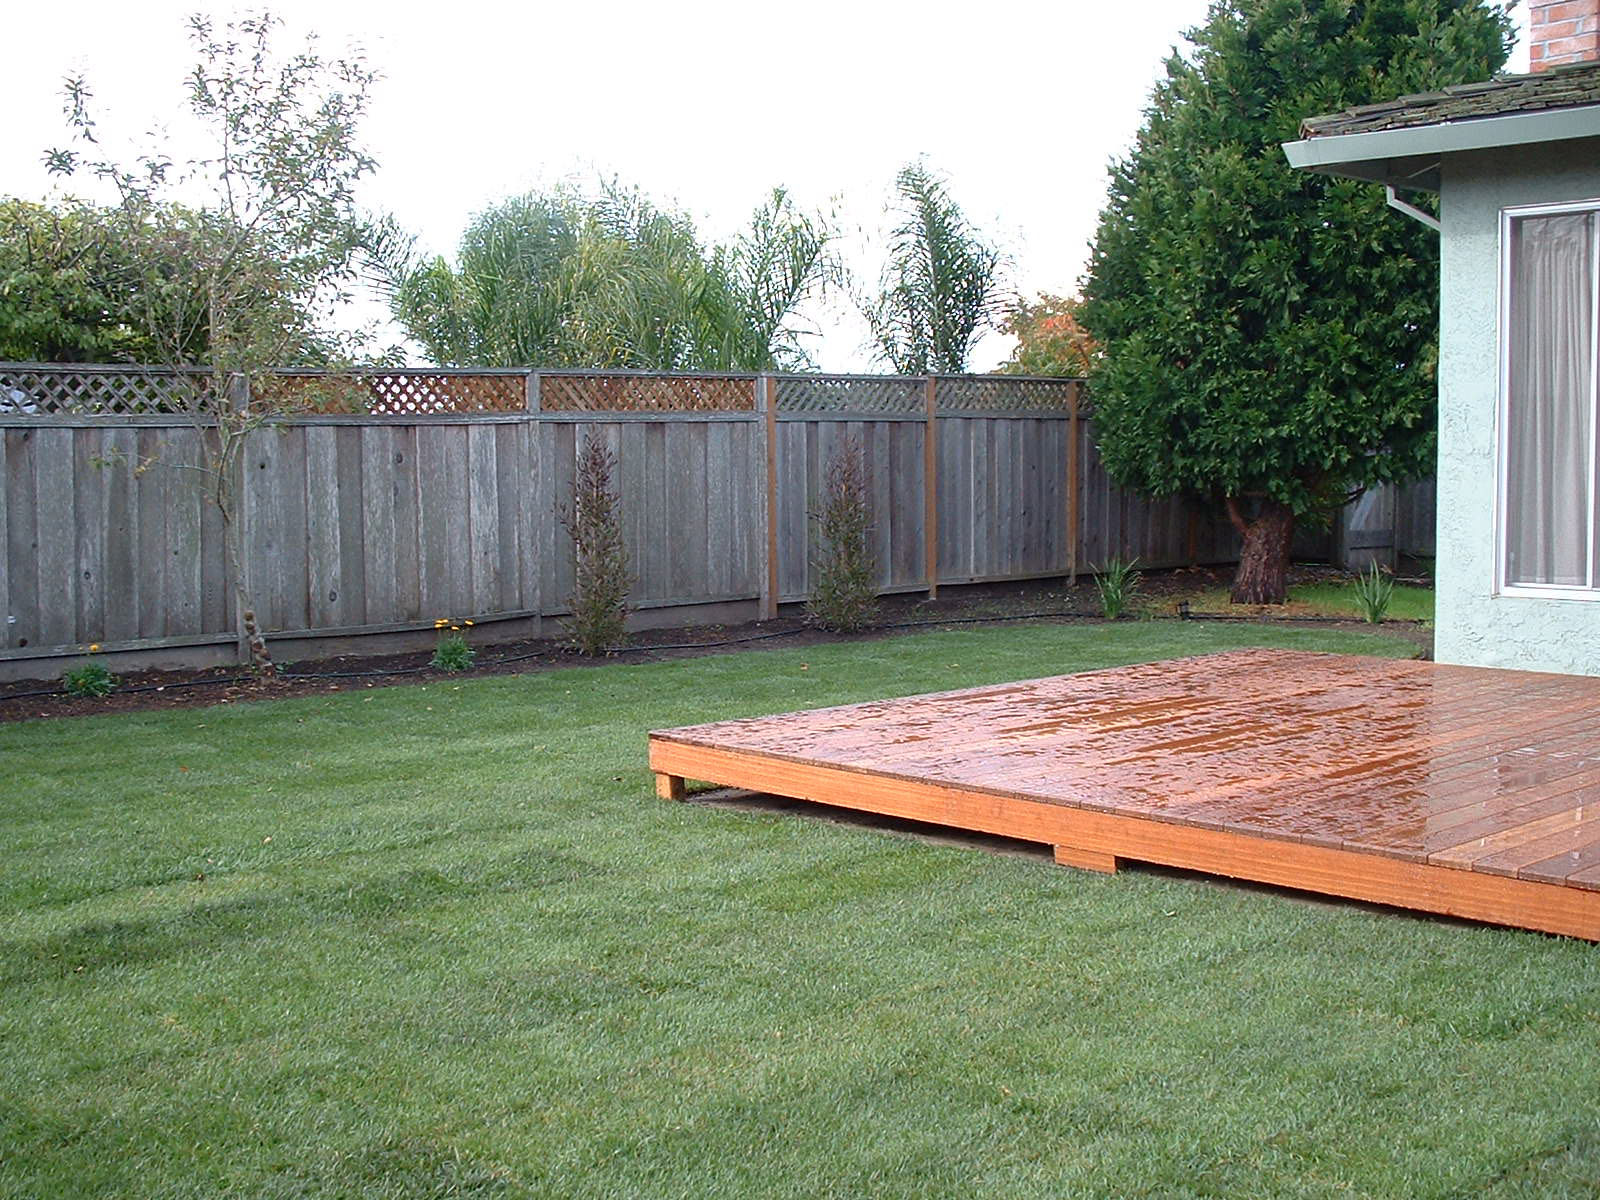 47 deck and fenced backyard gate behind the tree opens to a